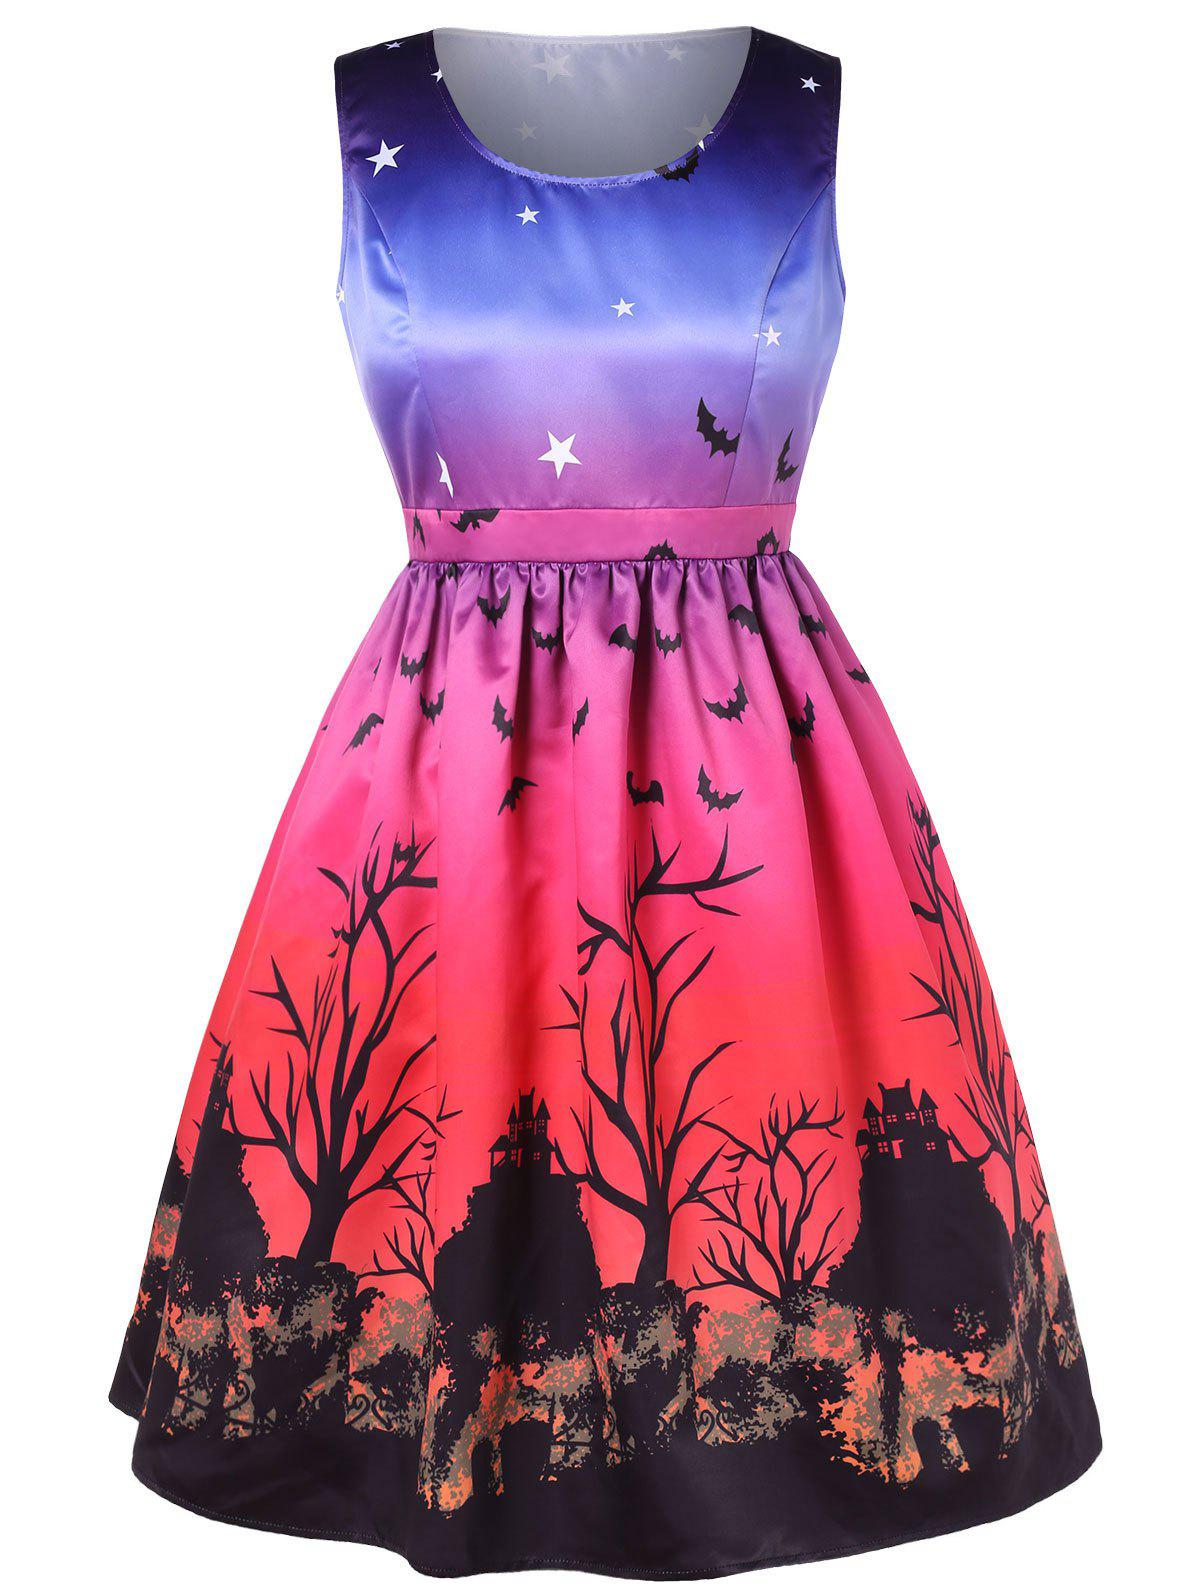 Plus Size Halloween Bat and Star Print A Line Dress, Multi